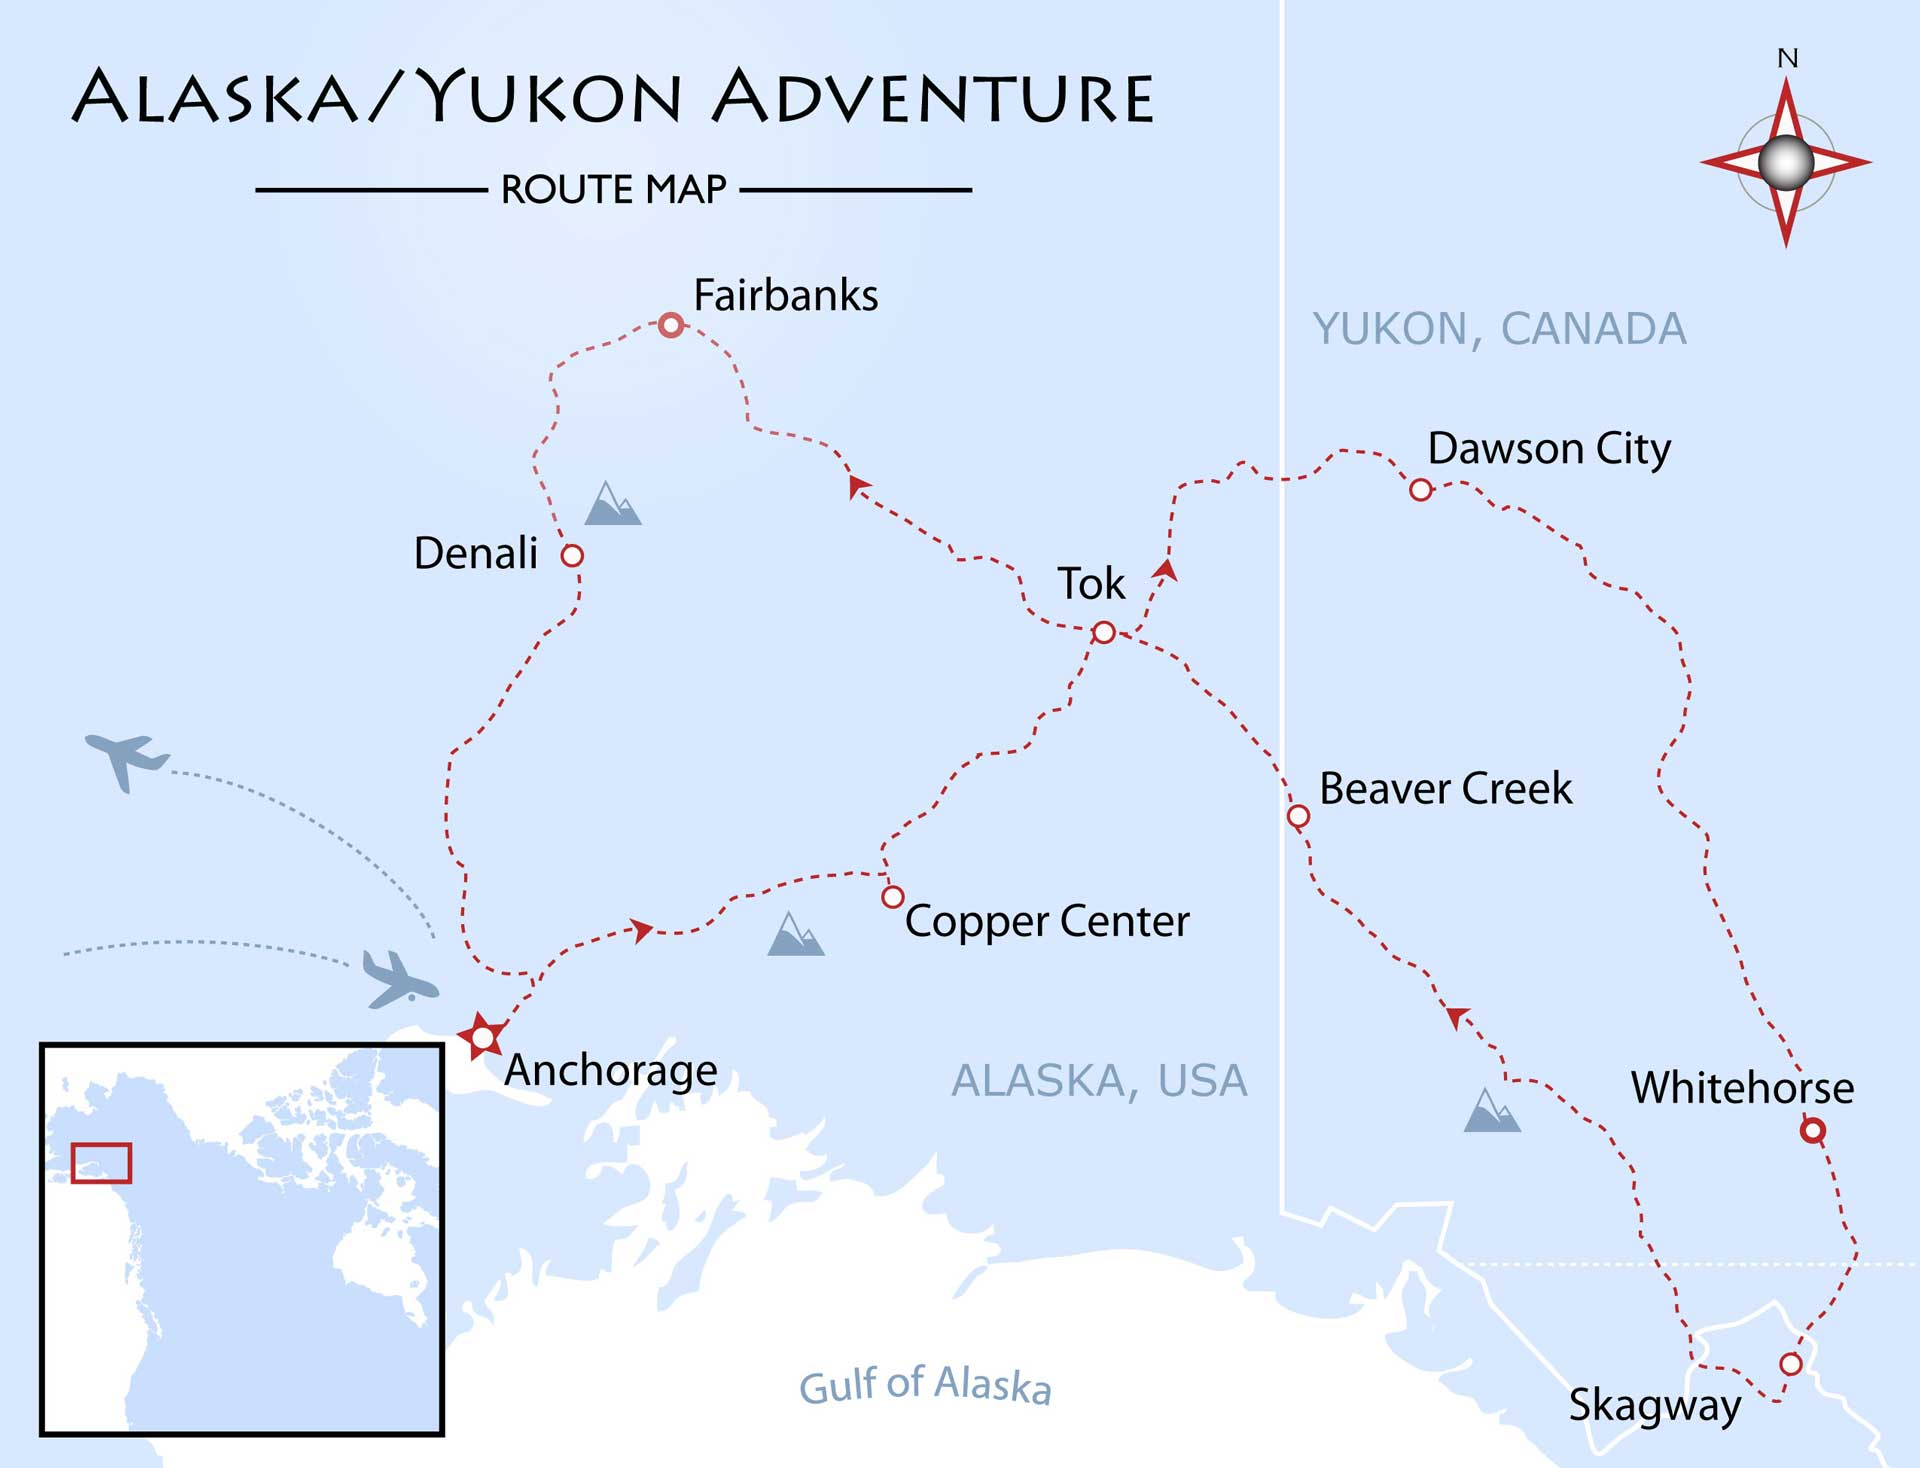 Alaska/Yukon Adventure Map